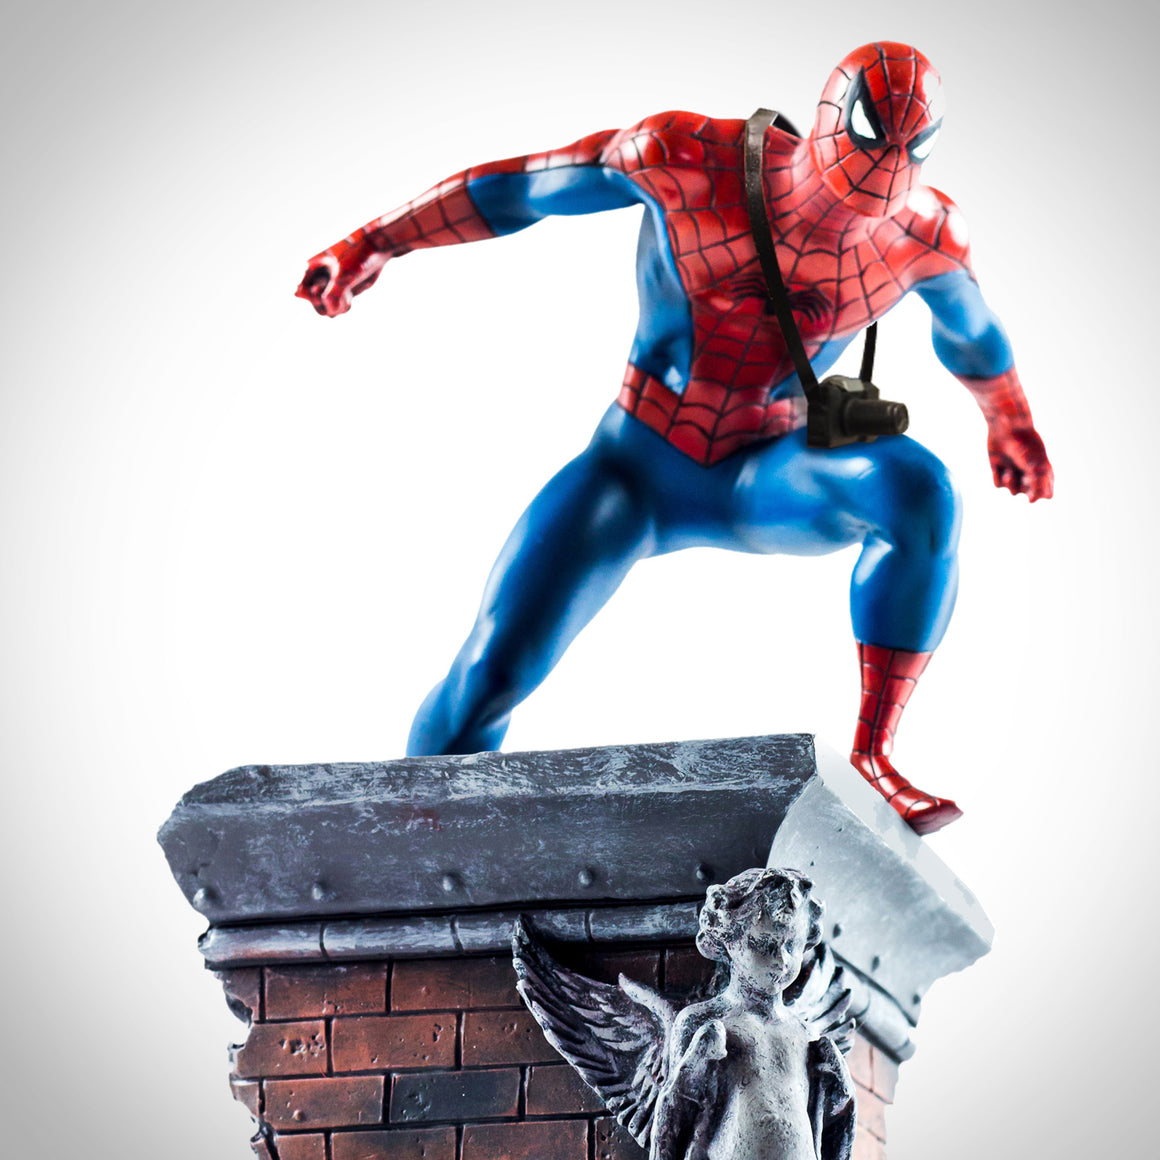 SPIDER-MAN- Hand-Signed Spider-Man Statue with Camera on Building by Stan Lee